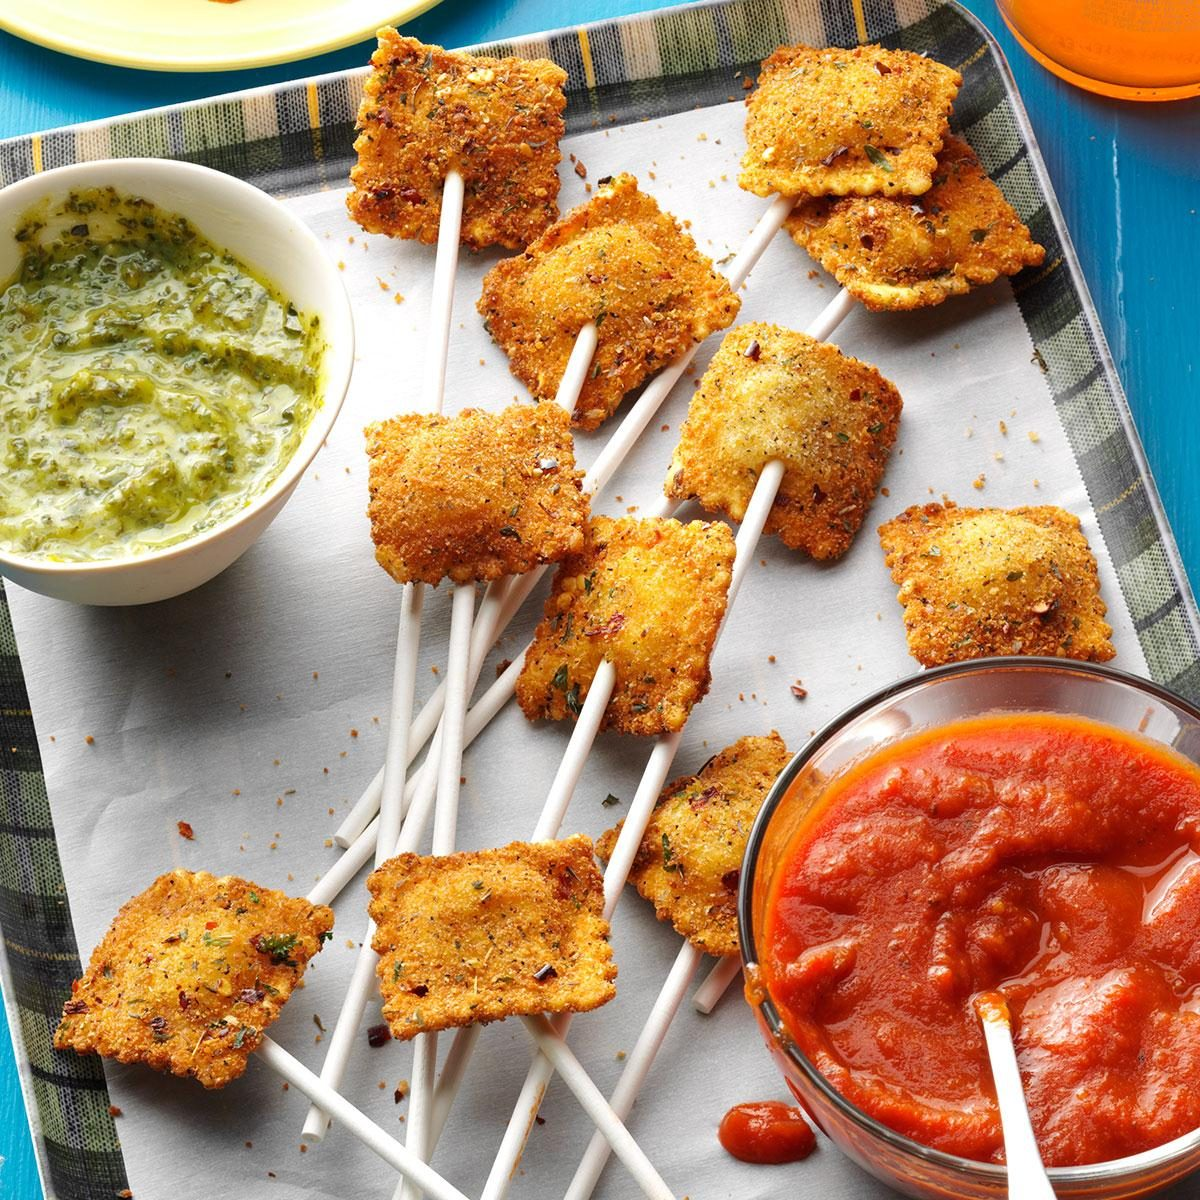 40 Tasty One-Bite Appetizer Recipes